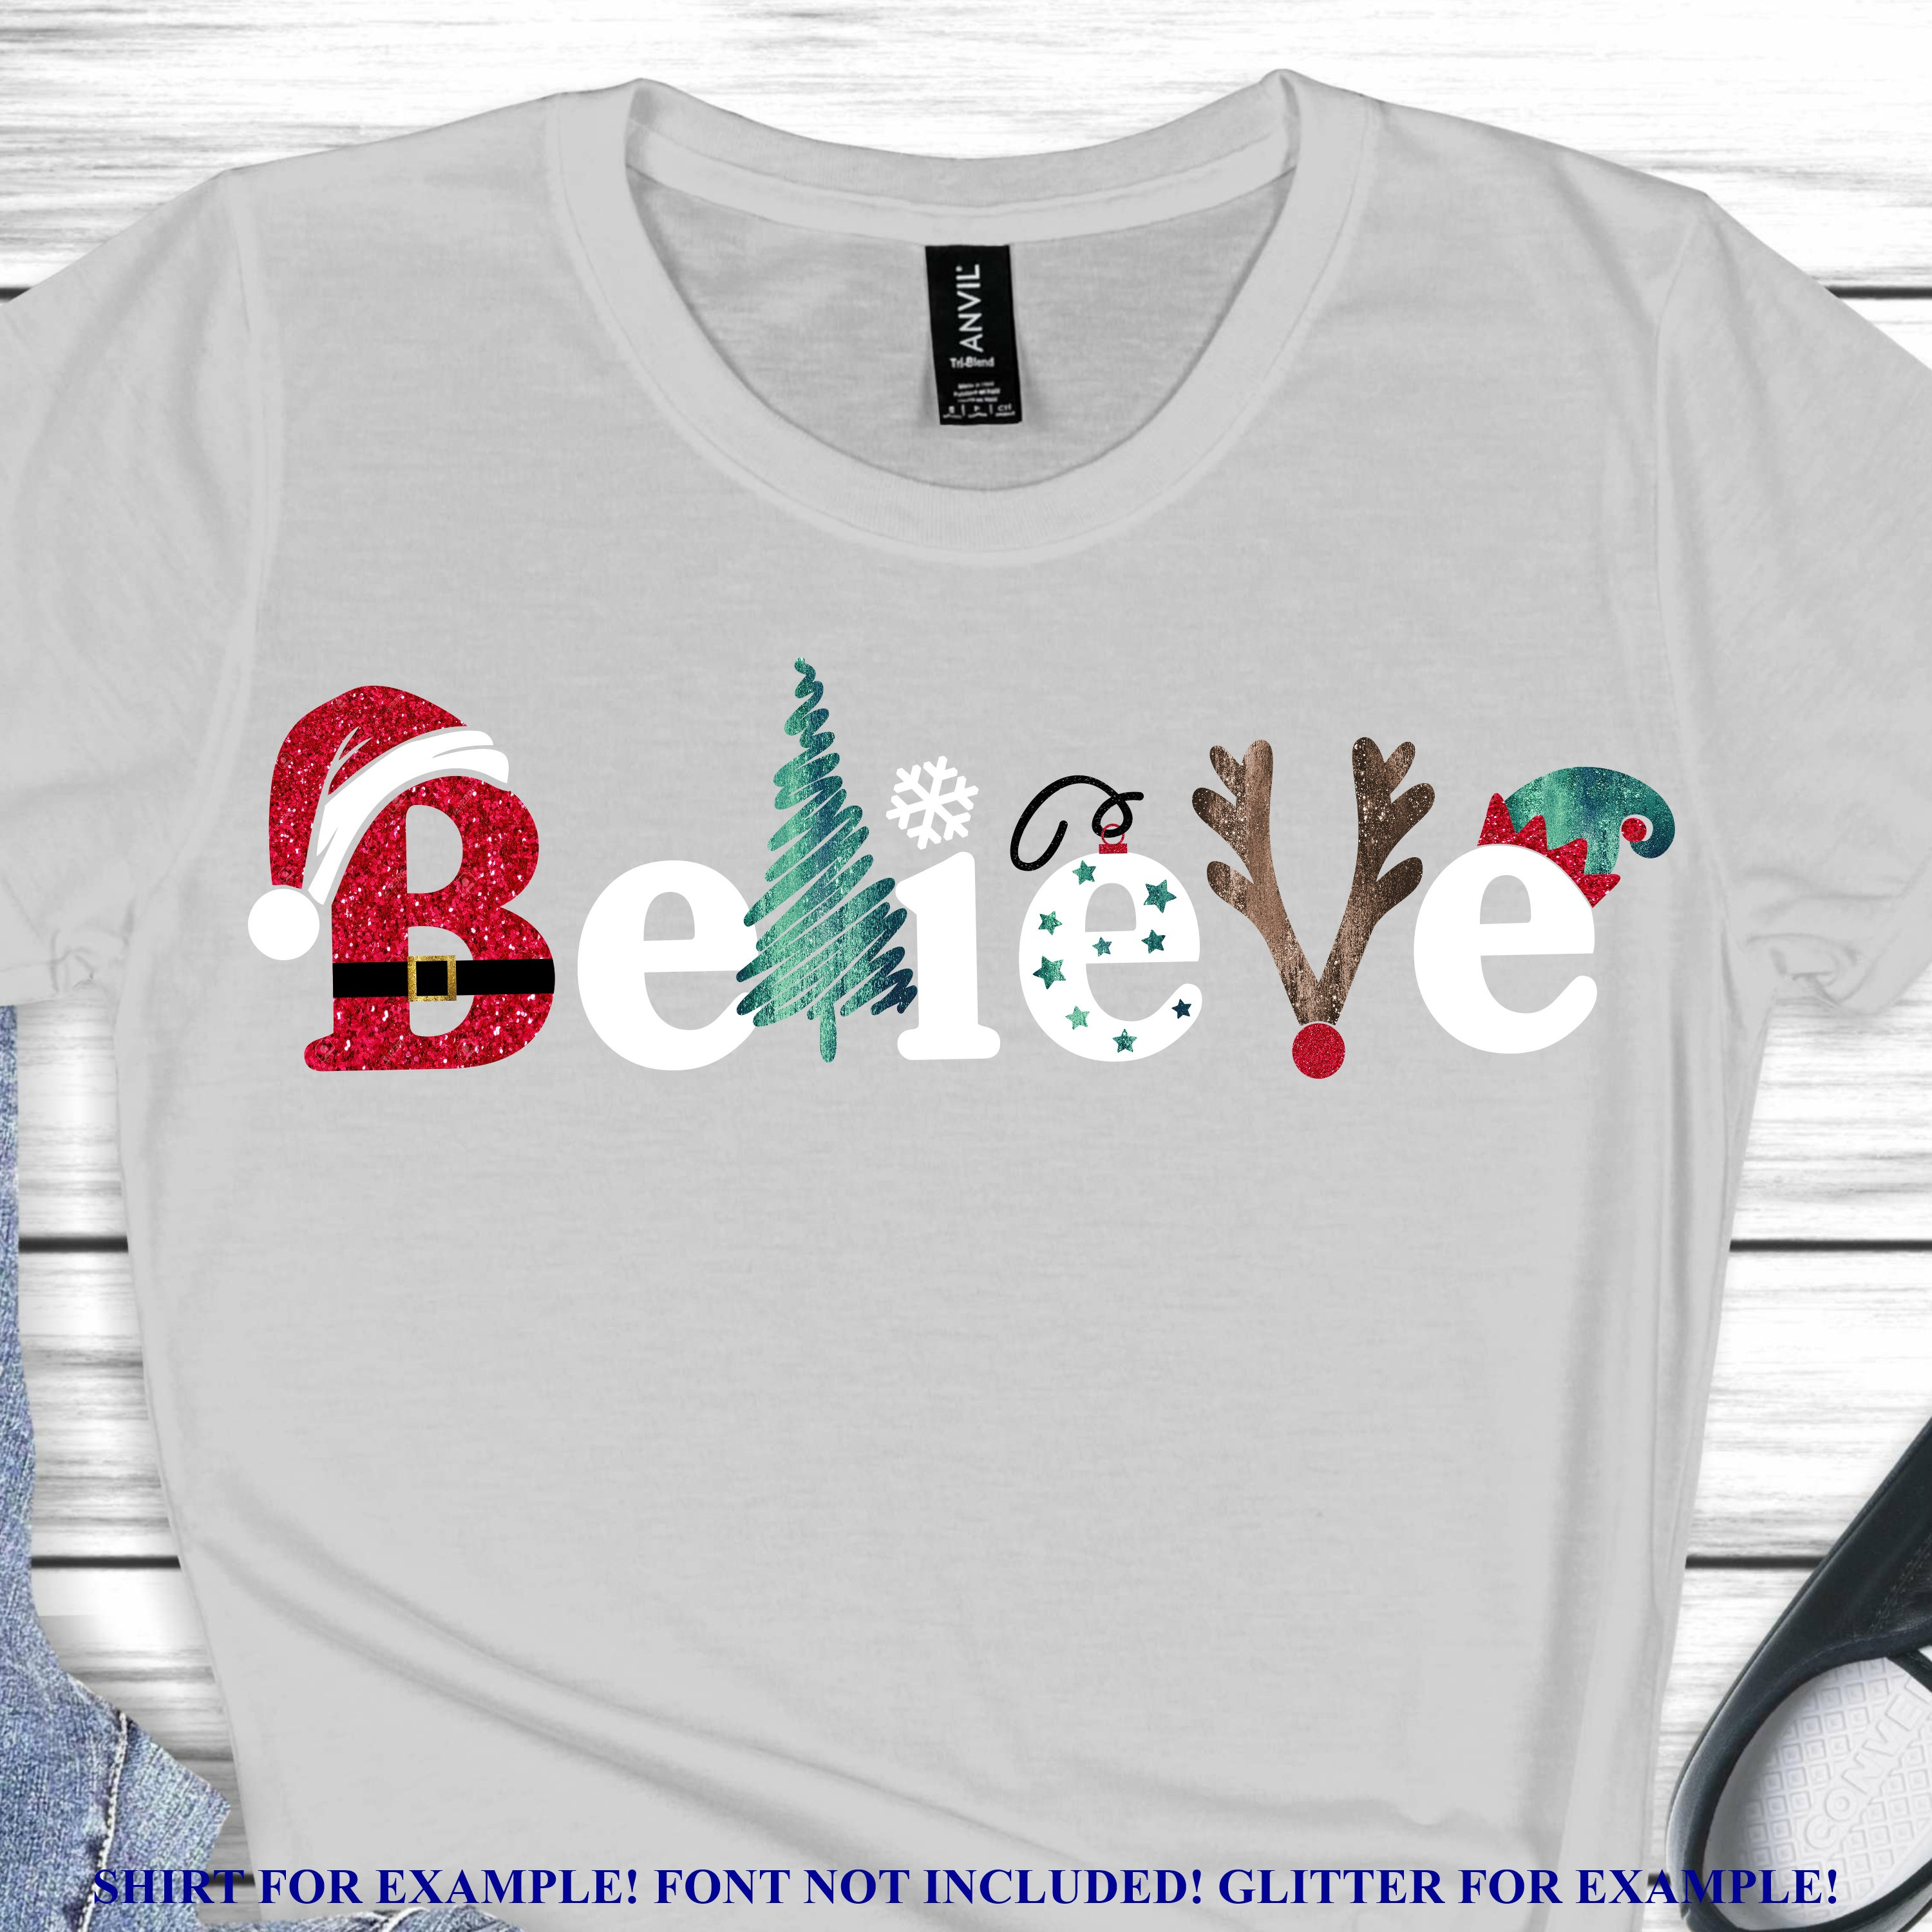 Believe-svgsanta-svgchristmas-svgsholiday-svgchristmas-shirtsrudolph-svg-mobile-svg-christmas-svg-svg-for-cricut-silhouette-design-5fa09620